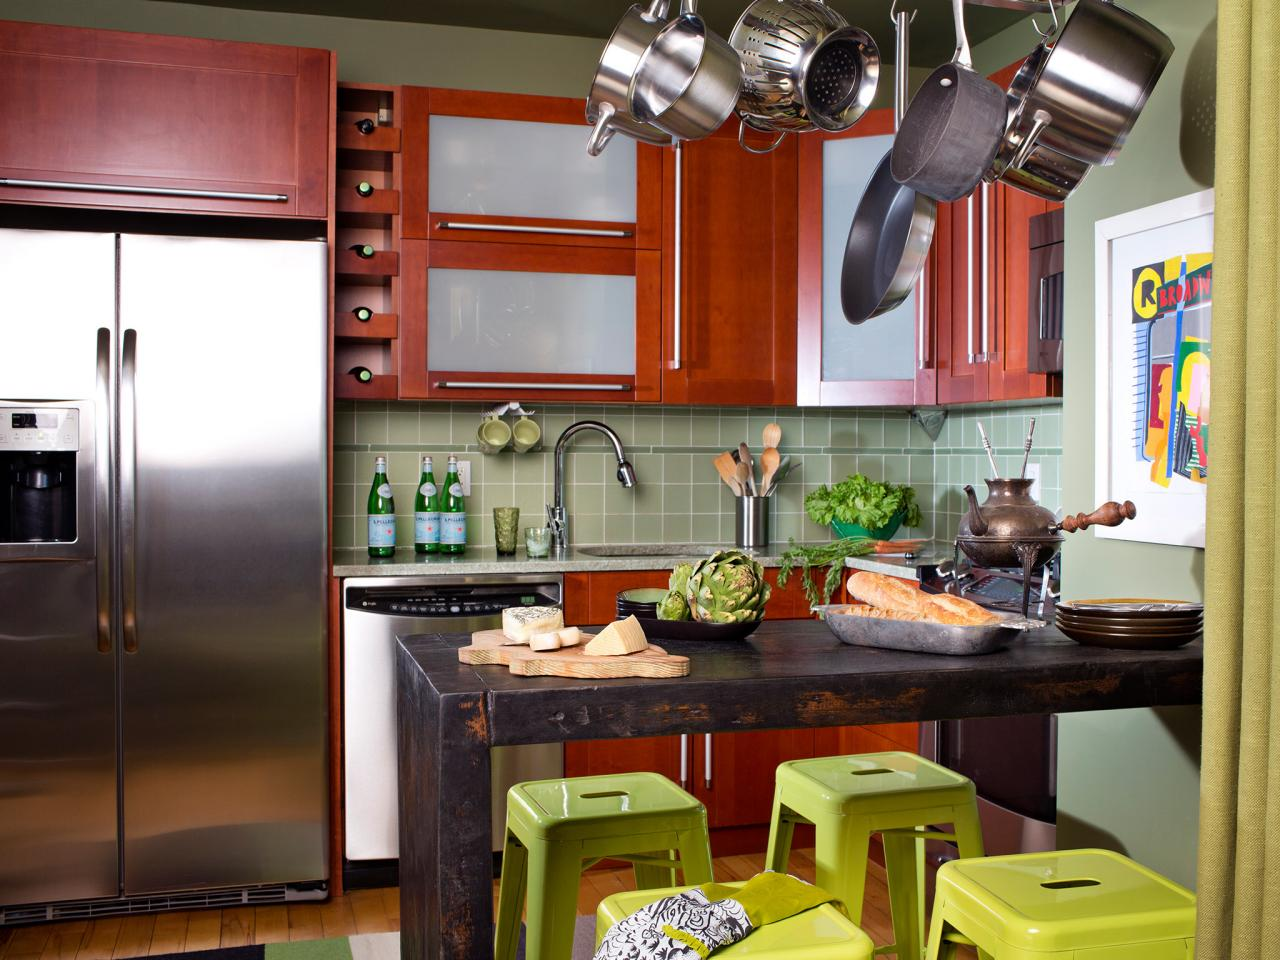 Ideas For Small Kitchen Cabinets Small Kitchen Cabinets Pictures Ideas & Tips From Hgtv  Hgtv